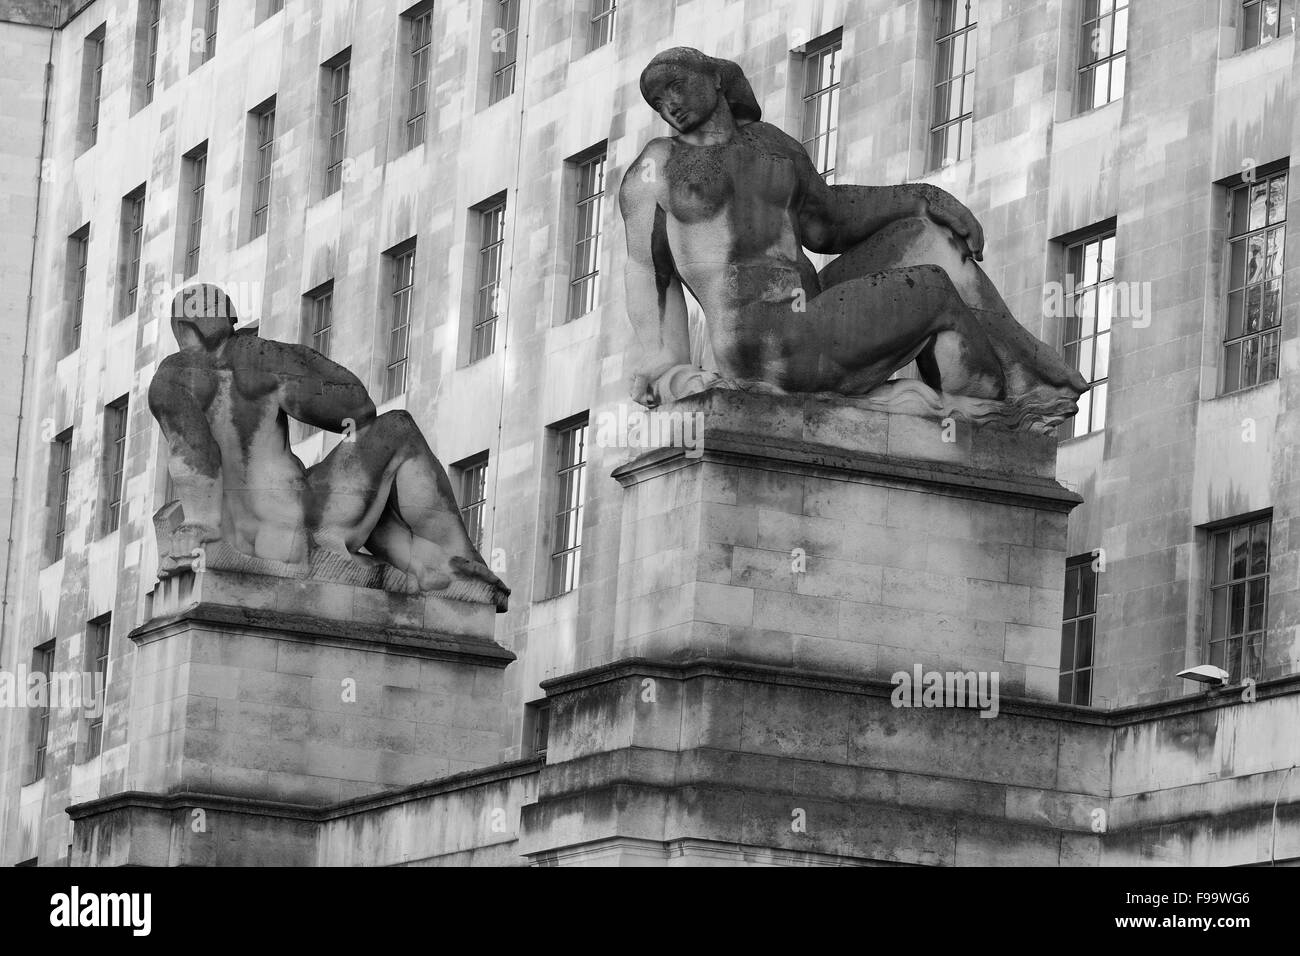 Two stone sculptures at the entrance to the Ministry of Defence building in Whitehall, London, England. - Stock Image